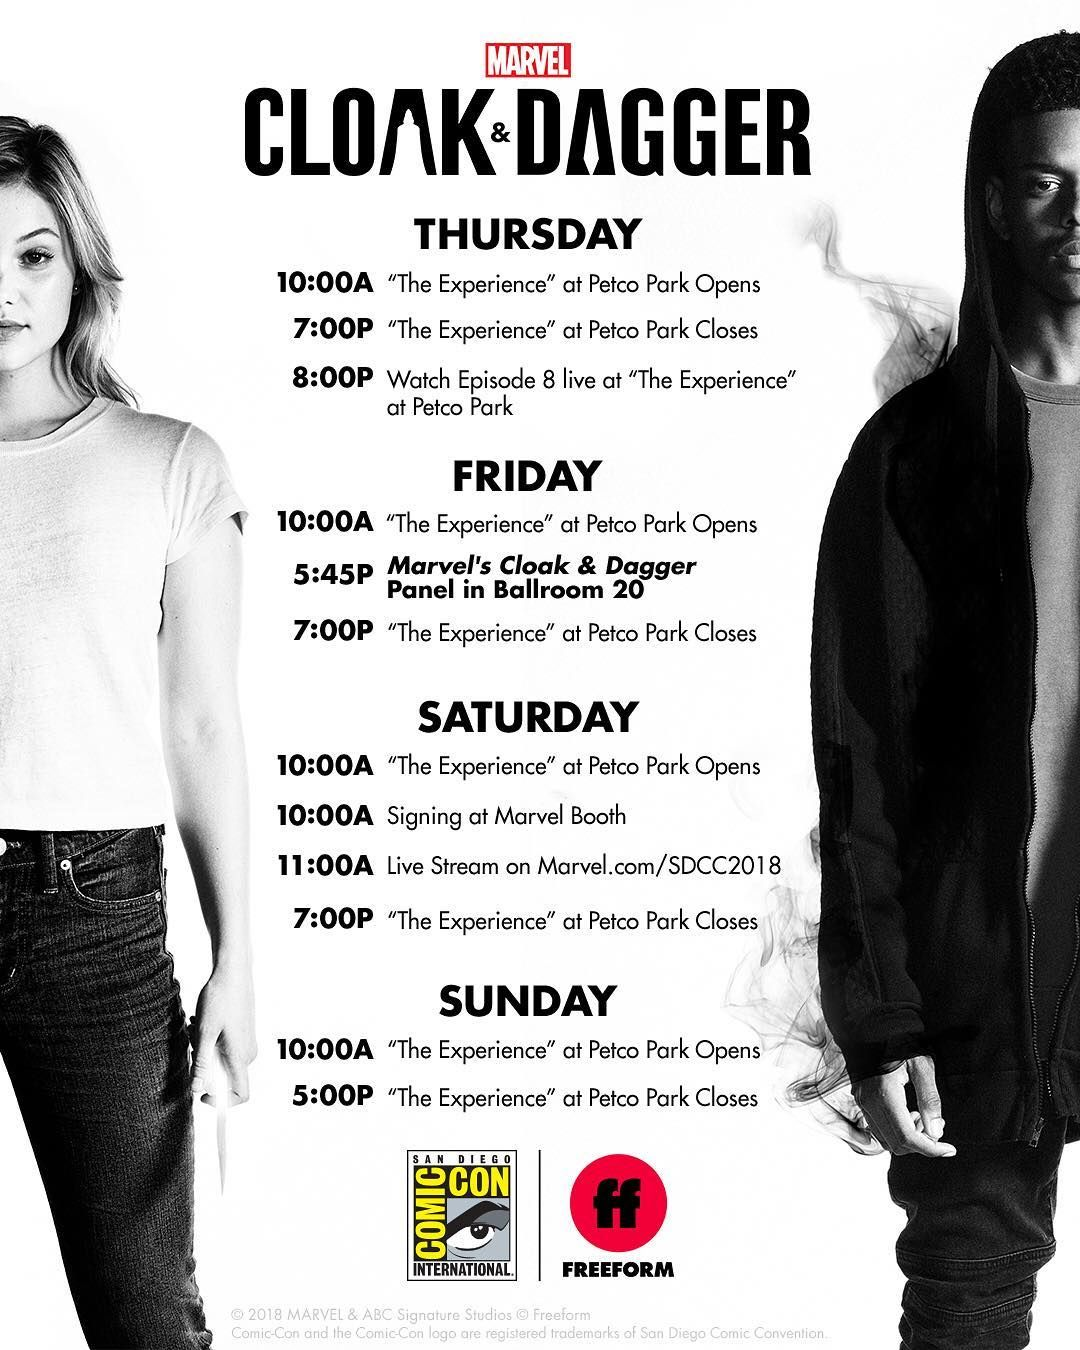 Marvel S Cloakanddagger Is Taking Over Comic Con It All Begins Tomorrow You Ready Cloakanddaggersdcc Marvel Freeform Tv Shows Comic Con Cloak Dagger